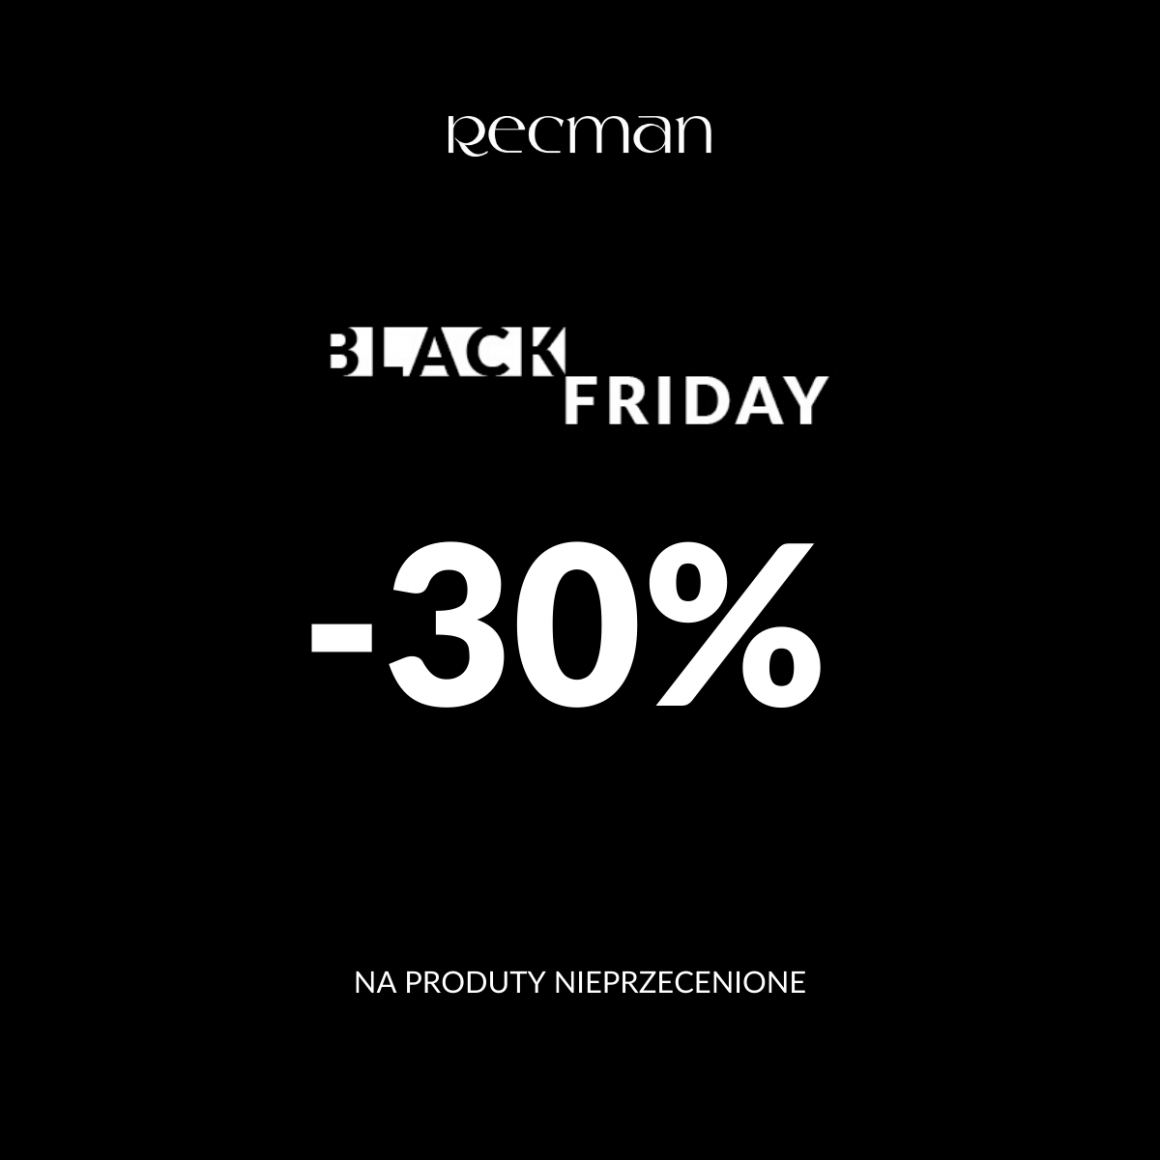 ❗️BLACK FRIDAY w #RECMAN ❗️